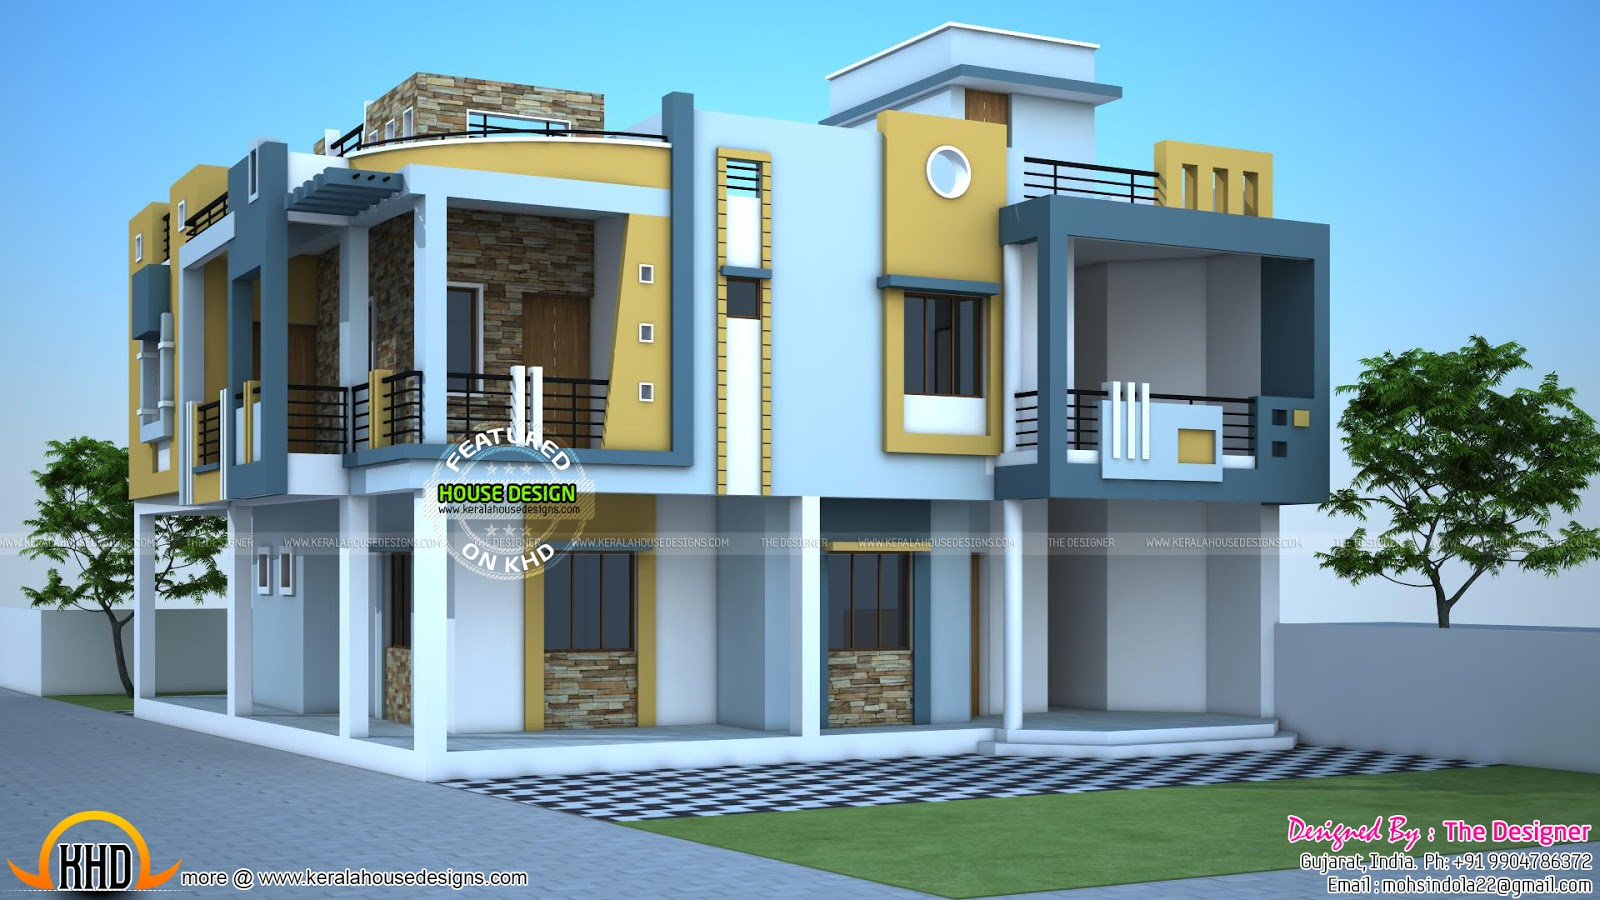 Modern duplex house in india kerala home design and for Small duplex house plans in india